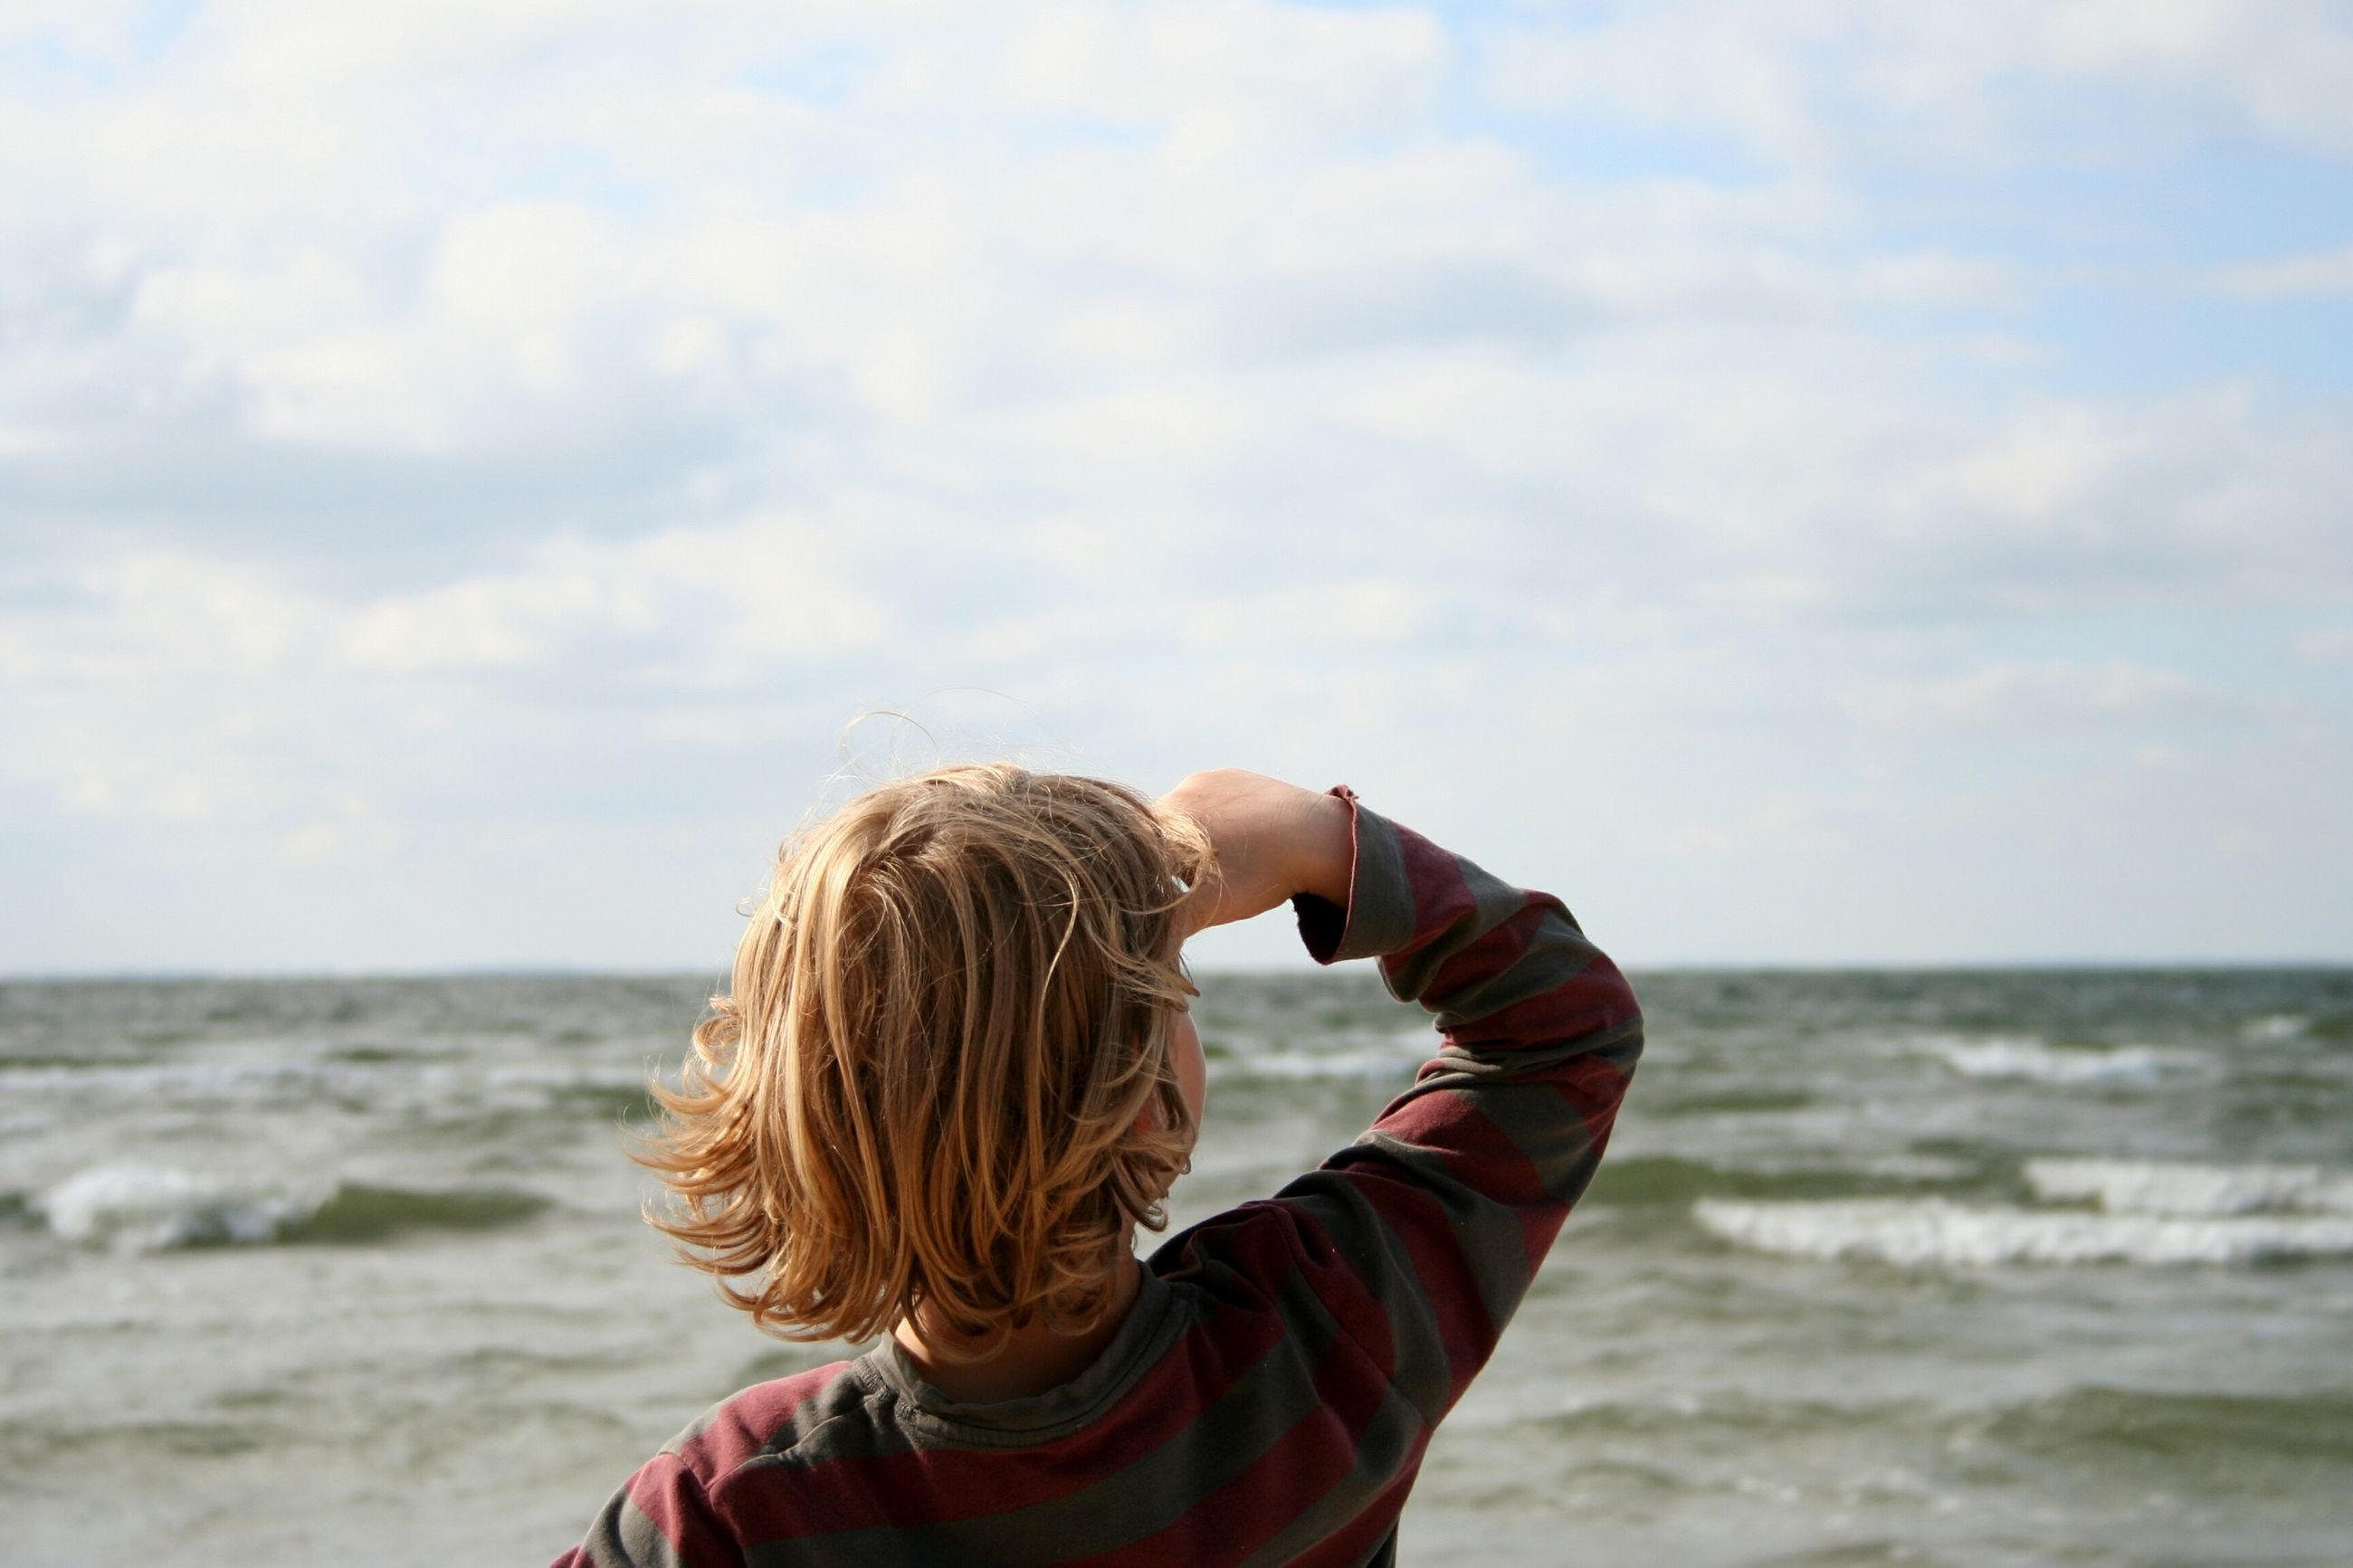 sea, leisure activity, horizon over water, lifestyles, rear view, sky, water, headshot, cloud - sky, holding, beauty in nature, non-urban scene, scenics, wave, tranquility, enjoyment, nature, tourism, casual clothing, focus on foreground, tranquil scene, travel destinations, vacations, long hair, wind, person, day